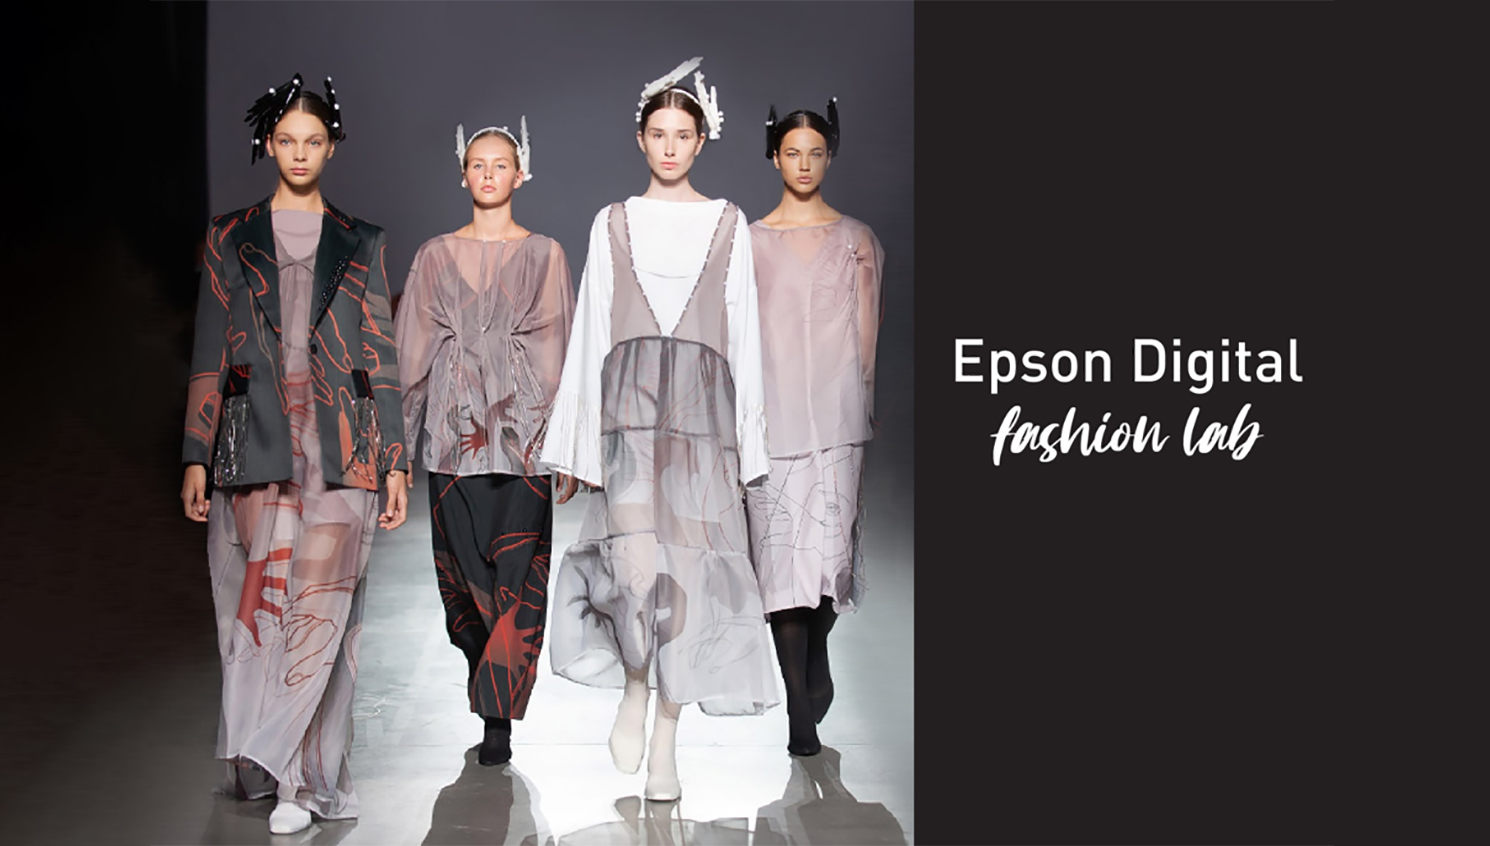 Digitalization and fashion: presentation of the educational project for designers from UFW and Epson